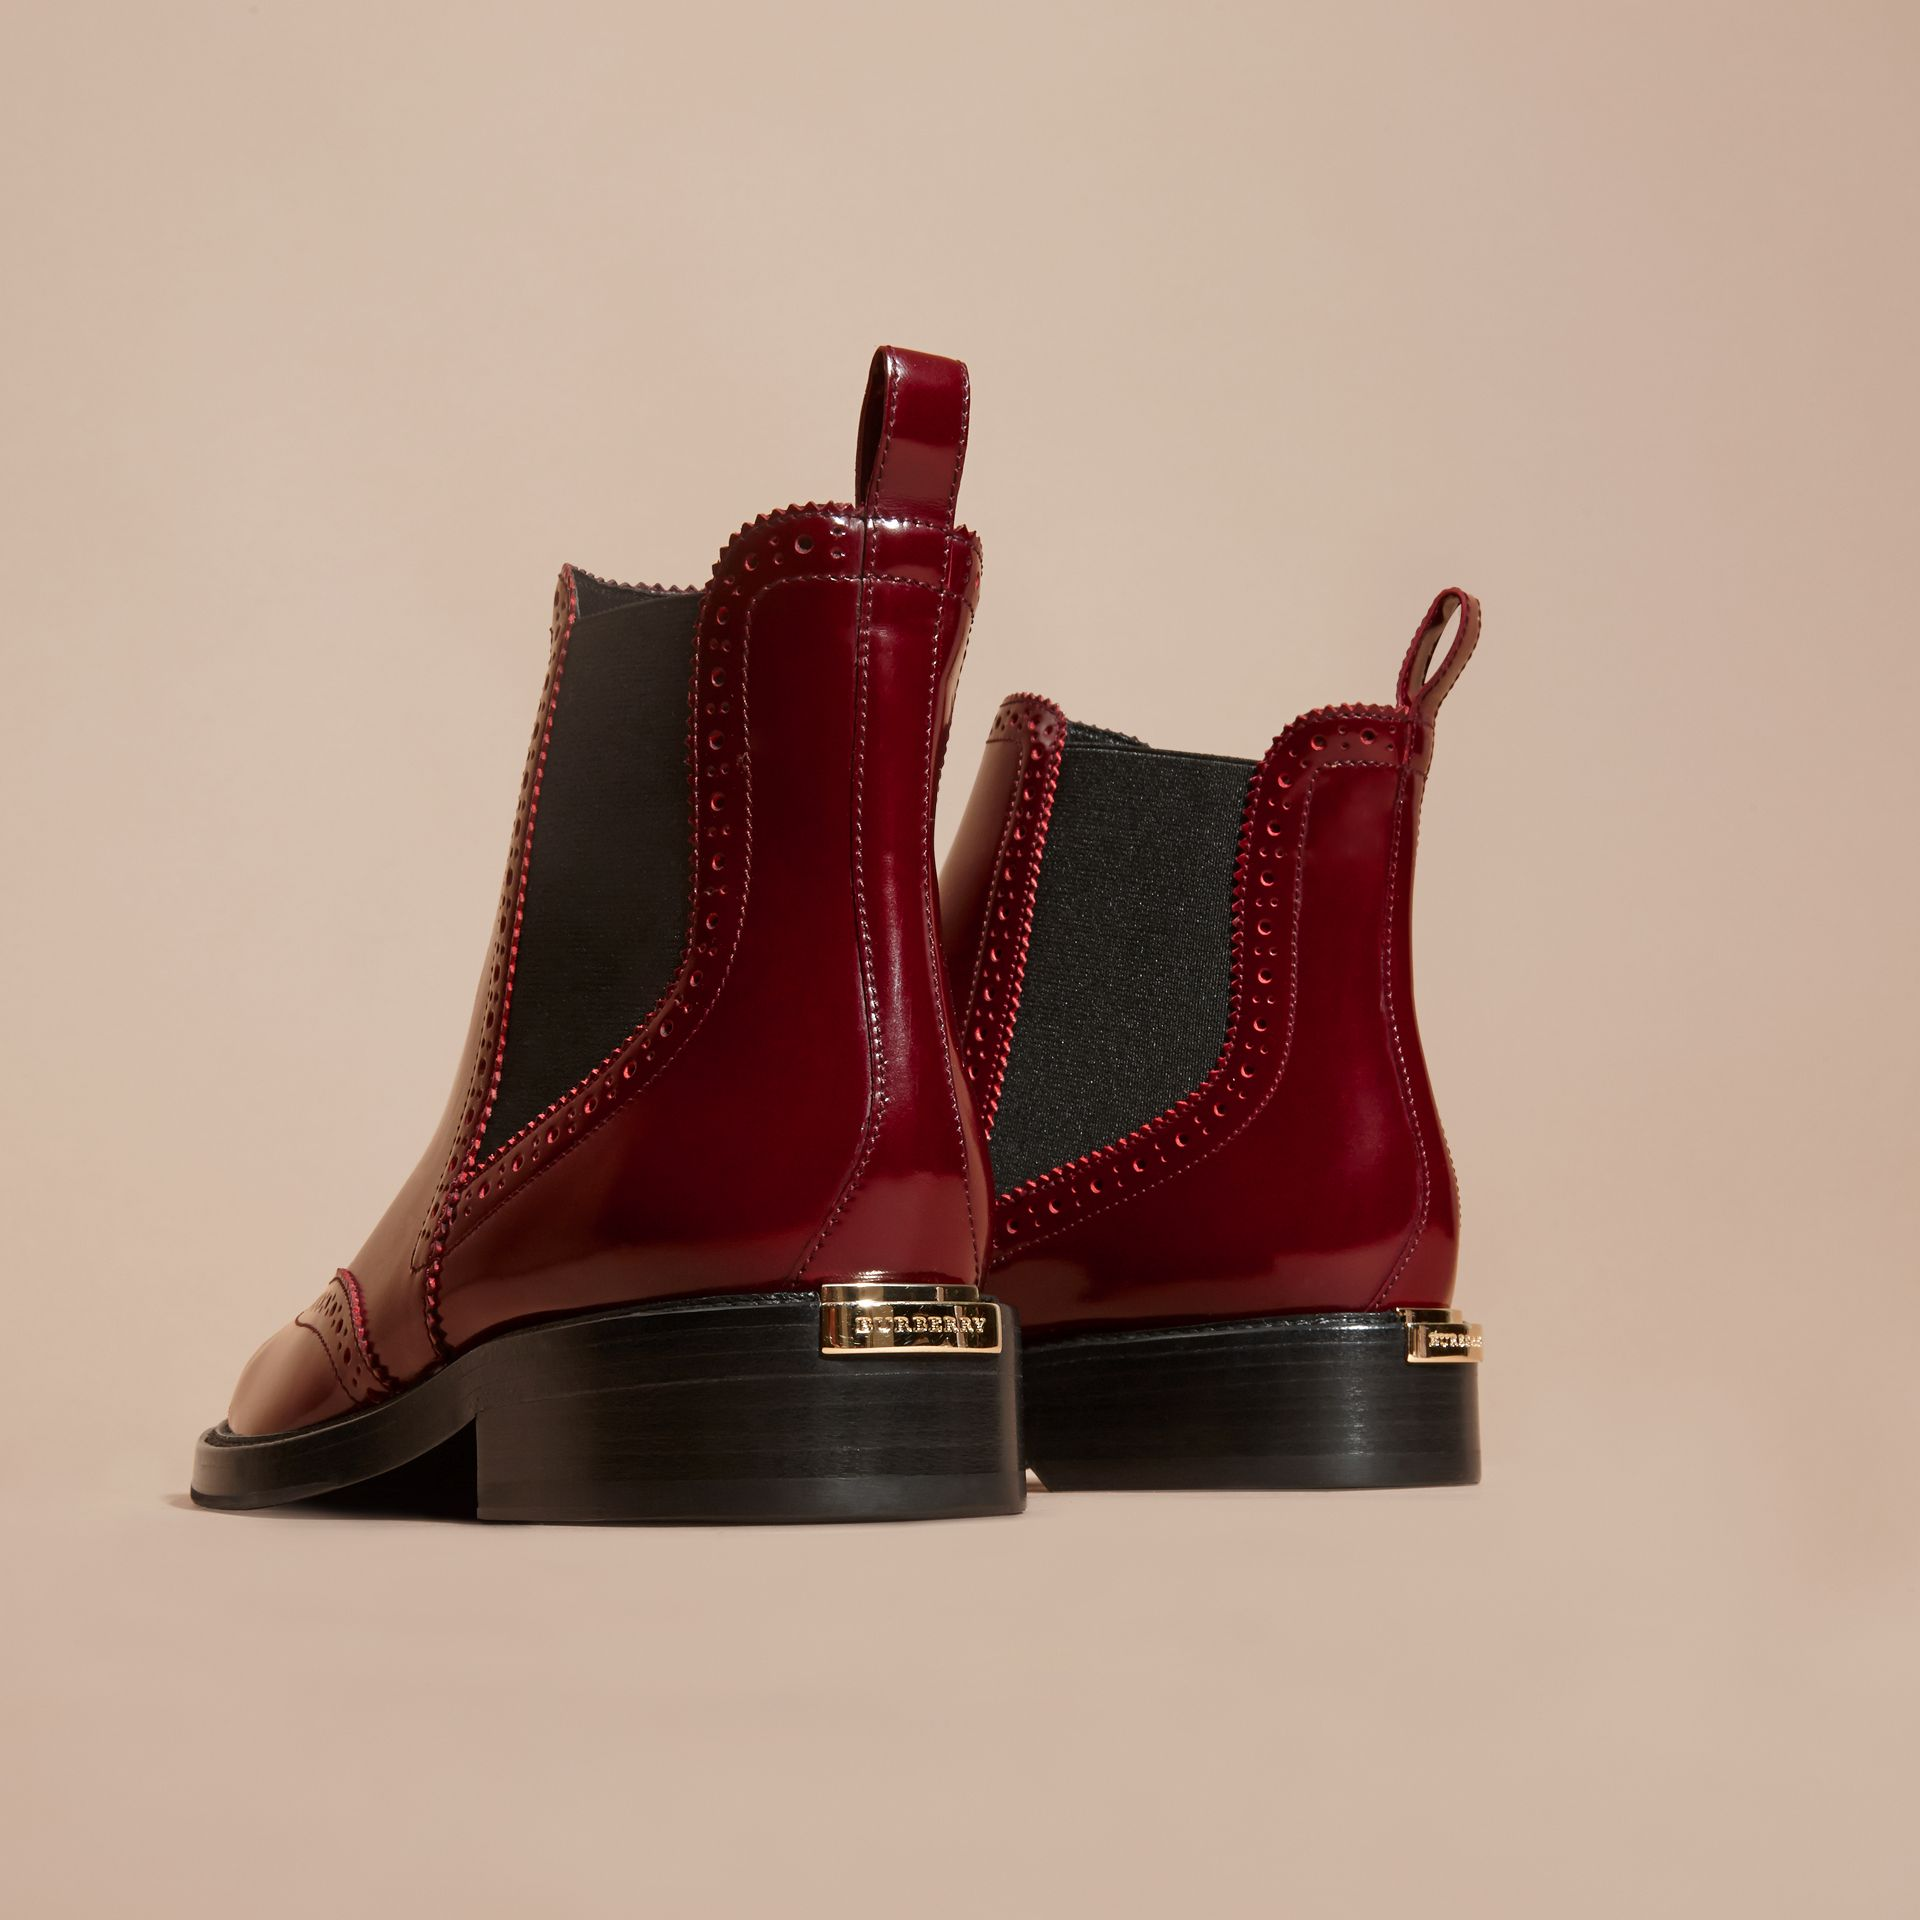 Rouge acajou Bottines Chelsea en cuir avec bout golf Rouge Acajou - photo de la galerie 4